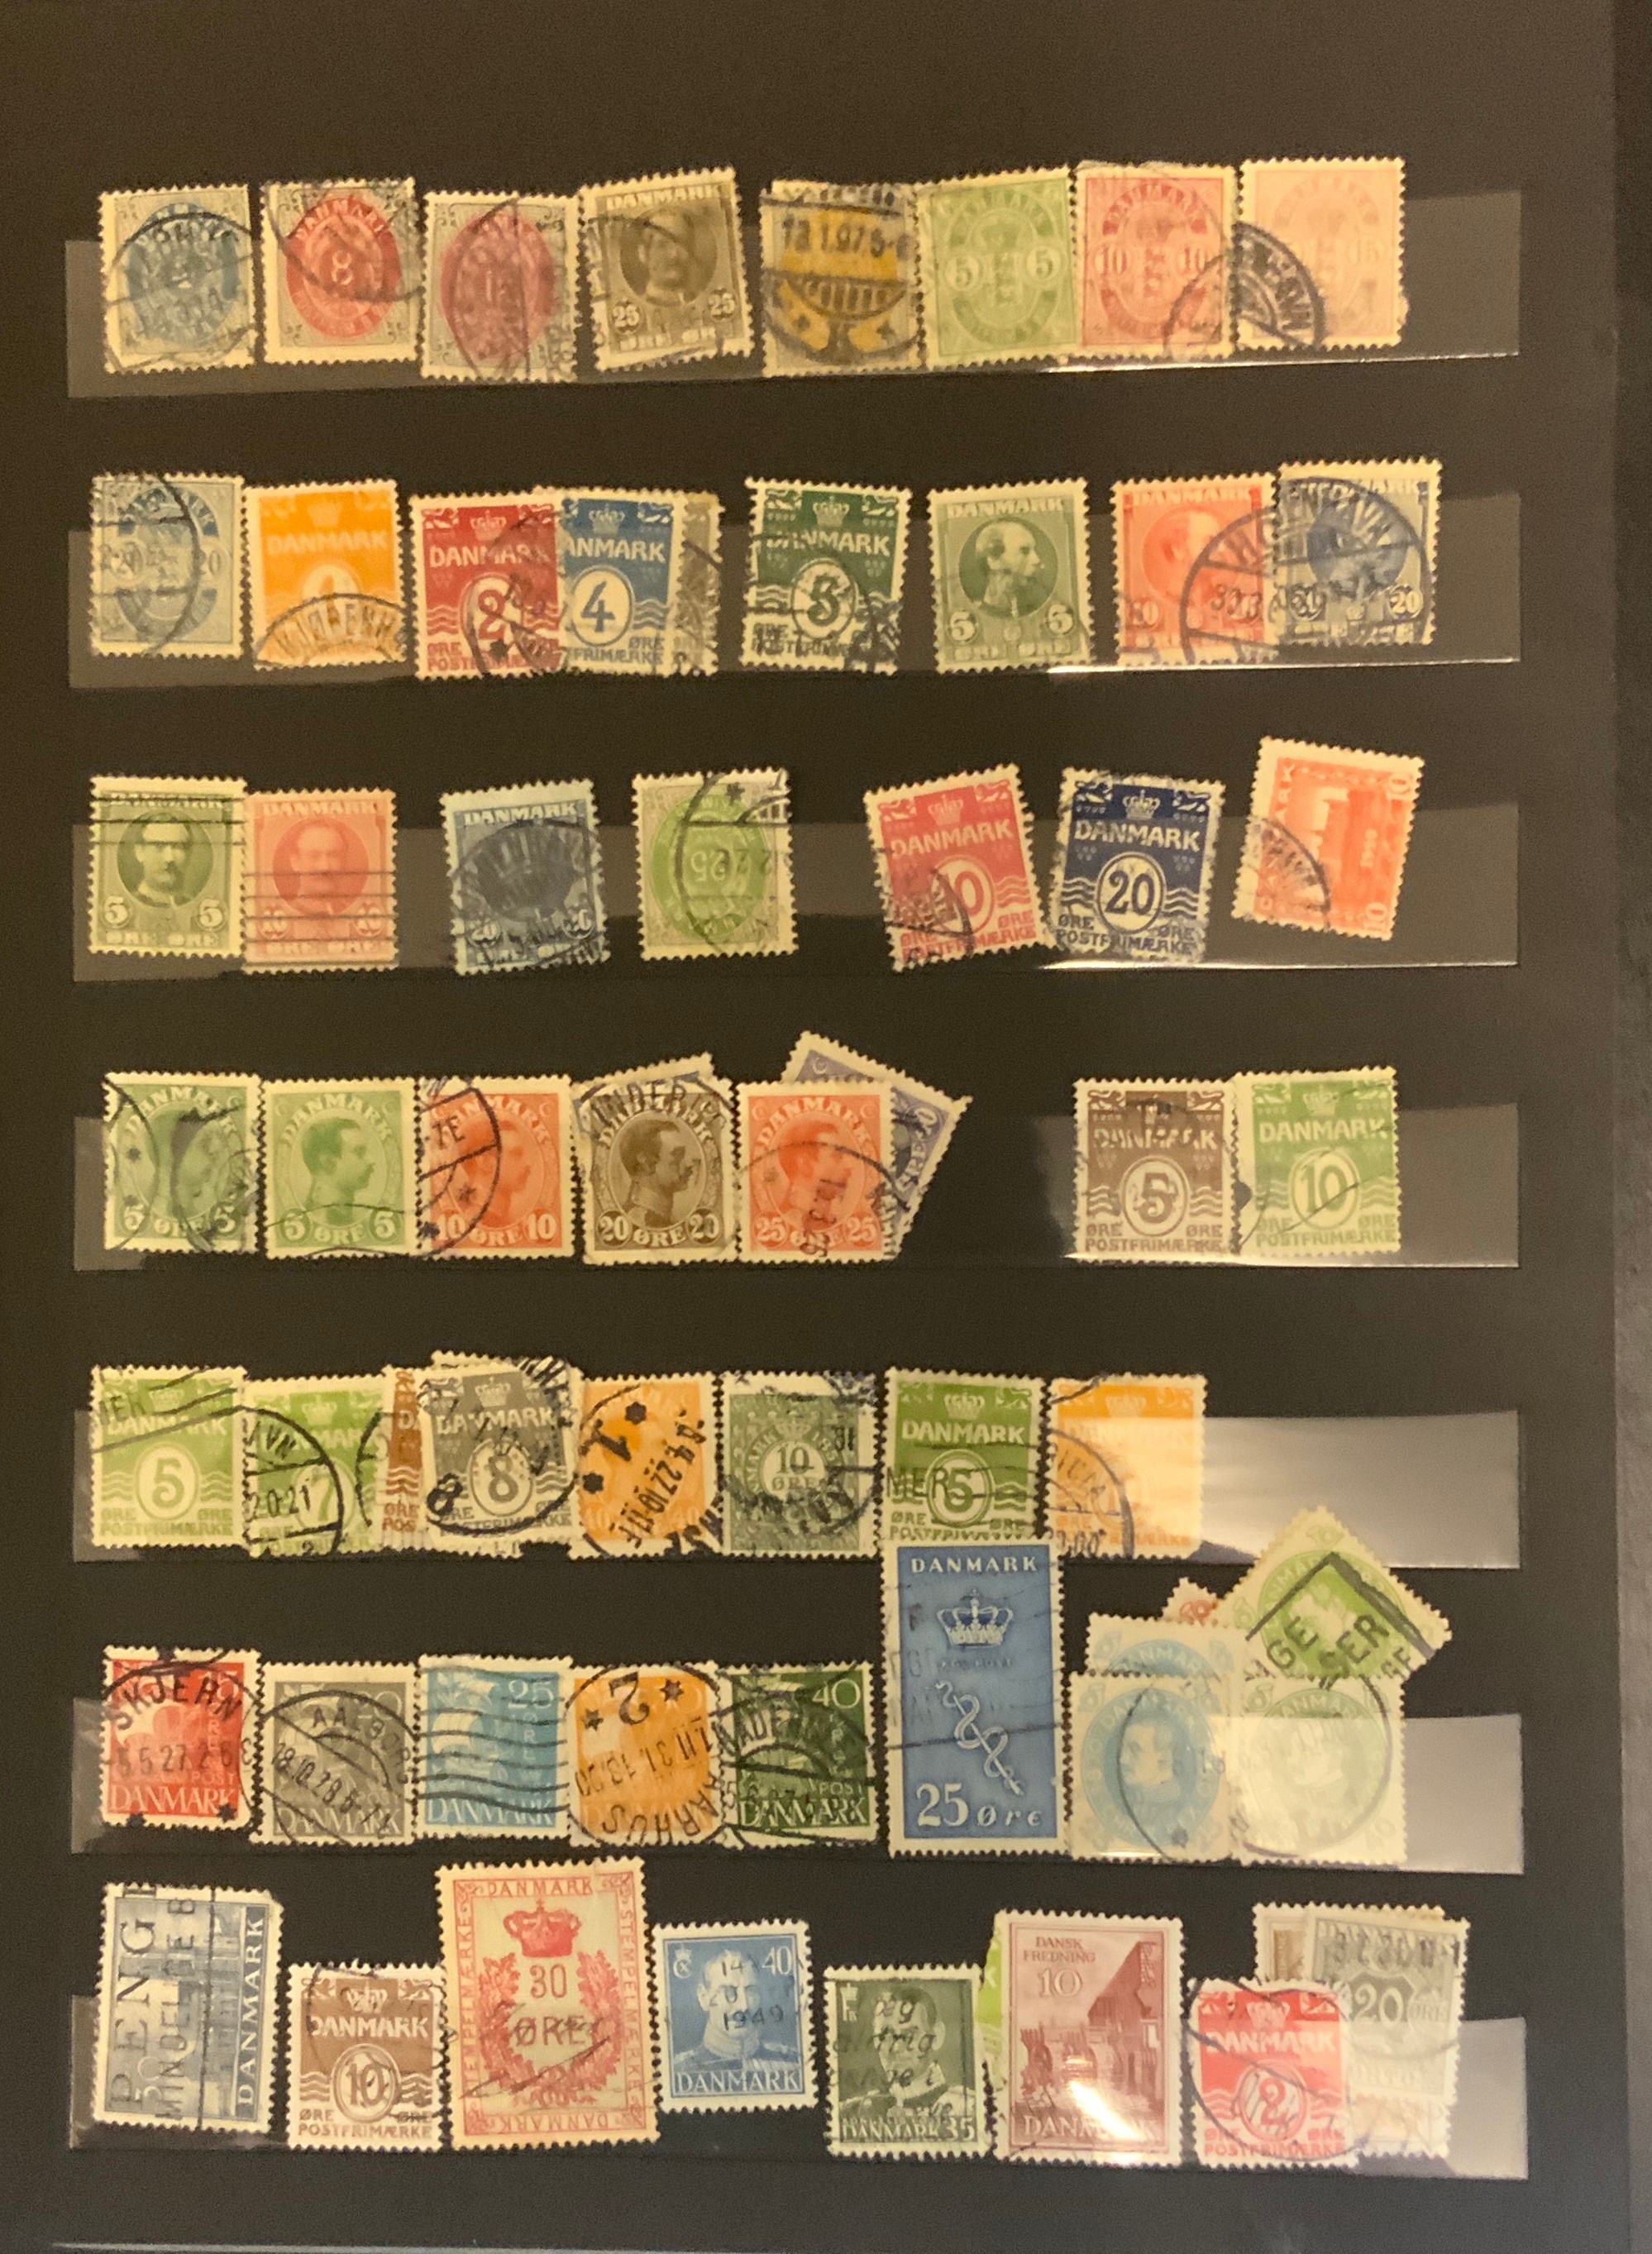 STOCKBOOK WITH STAMPS FROM VARIOUS COUNTRIES INCLUDING AUSTRIA, BELGIUM, FRANCE - Image 4 of 16